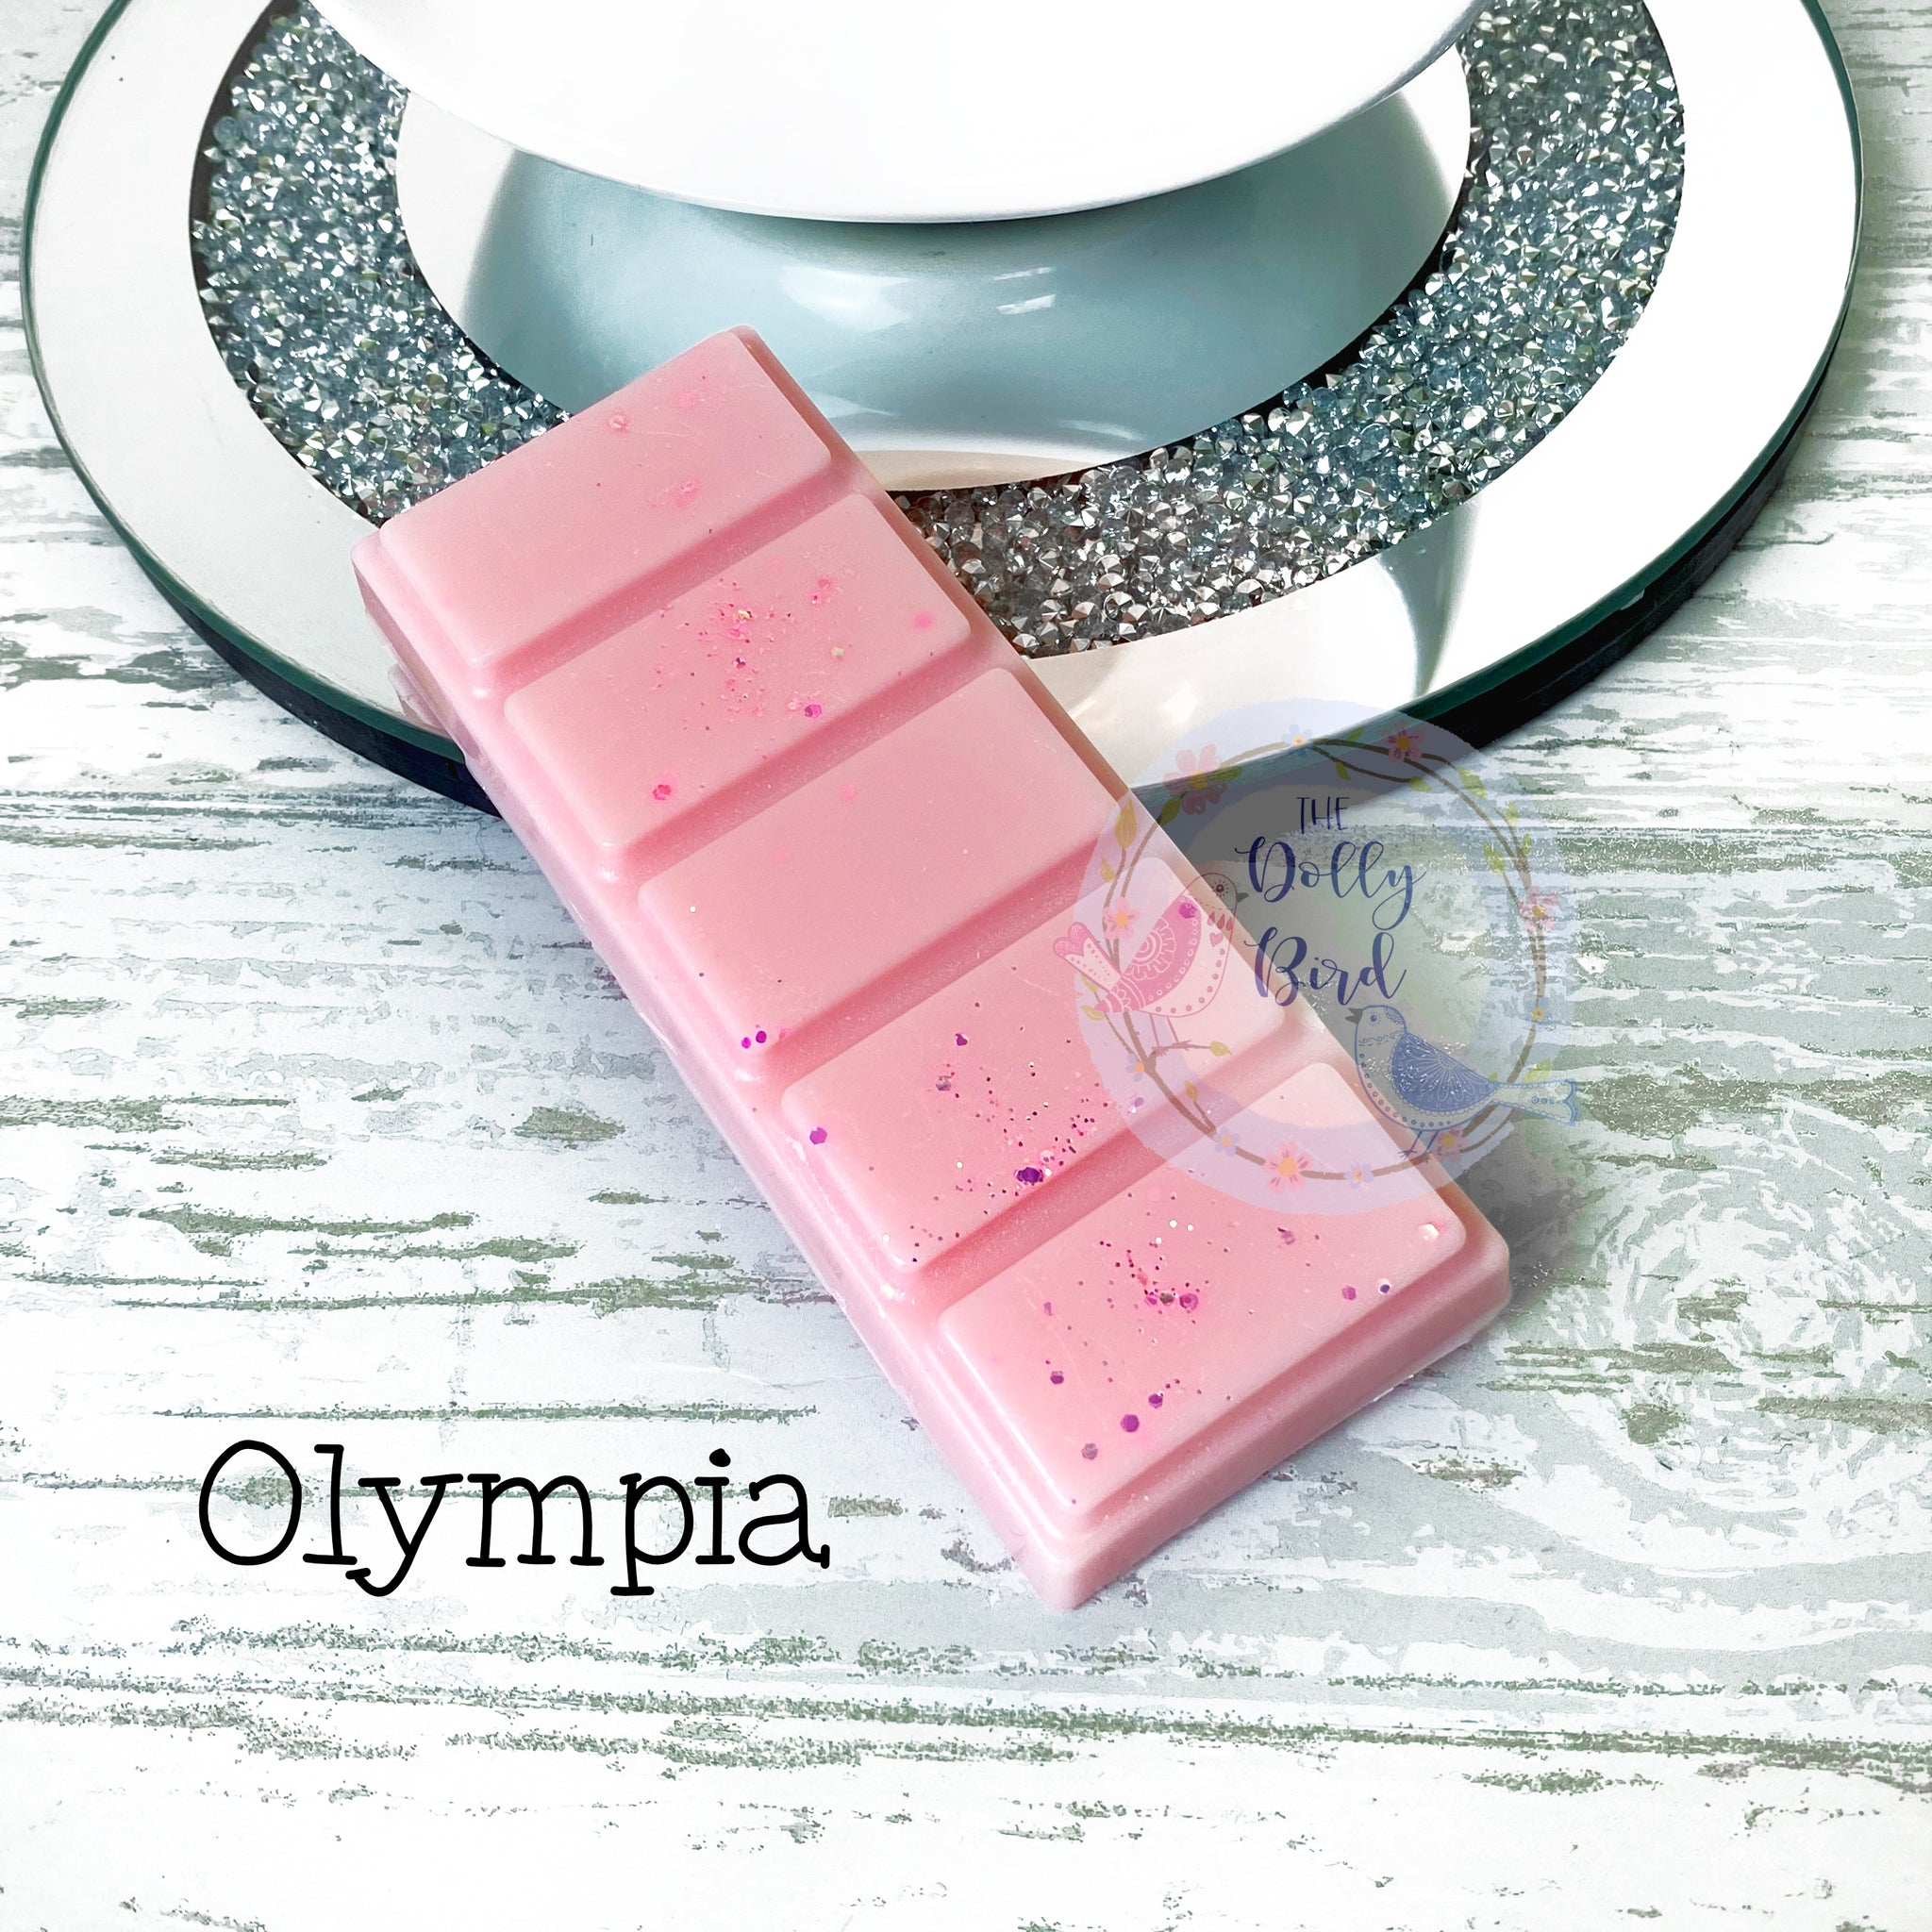 Olympia Wax Melt Snap Bar, Perfume Scented Wax, Soy Wax Melt, Clean Scented Wax Melts, Fresh Scent Wax Melts, Perfume Wax Melts